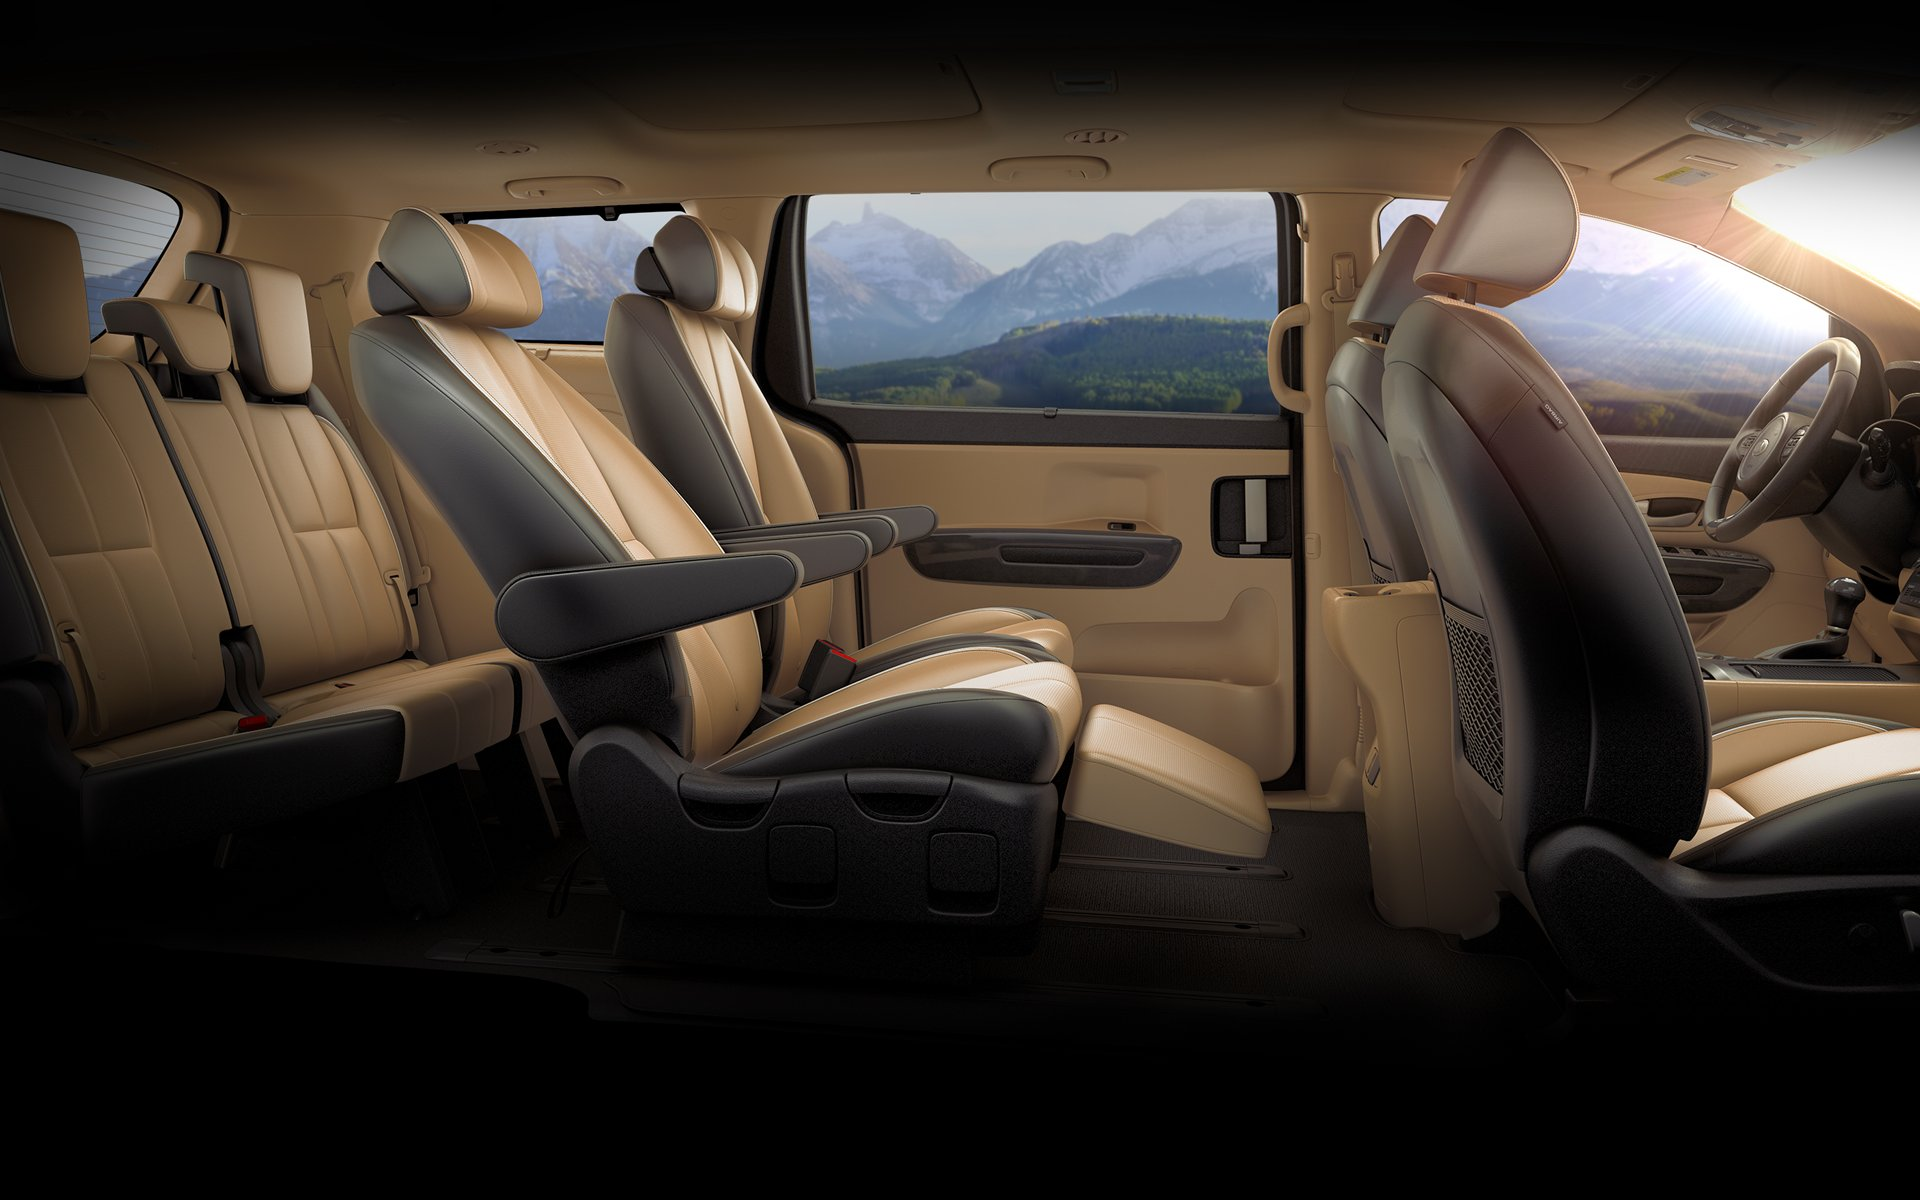 background_sedona_2015_comfort_overview--kia-1920x-jpg